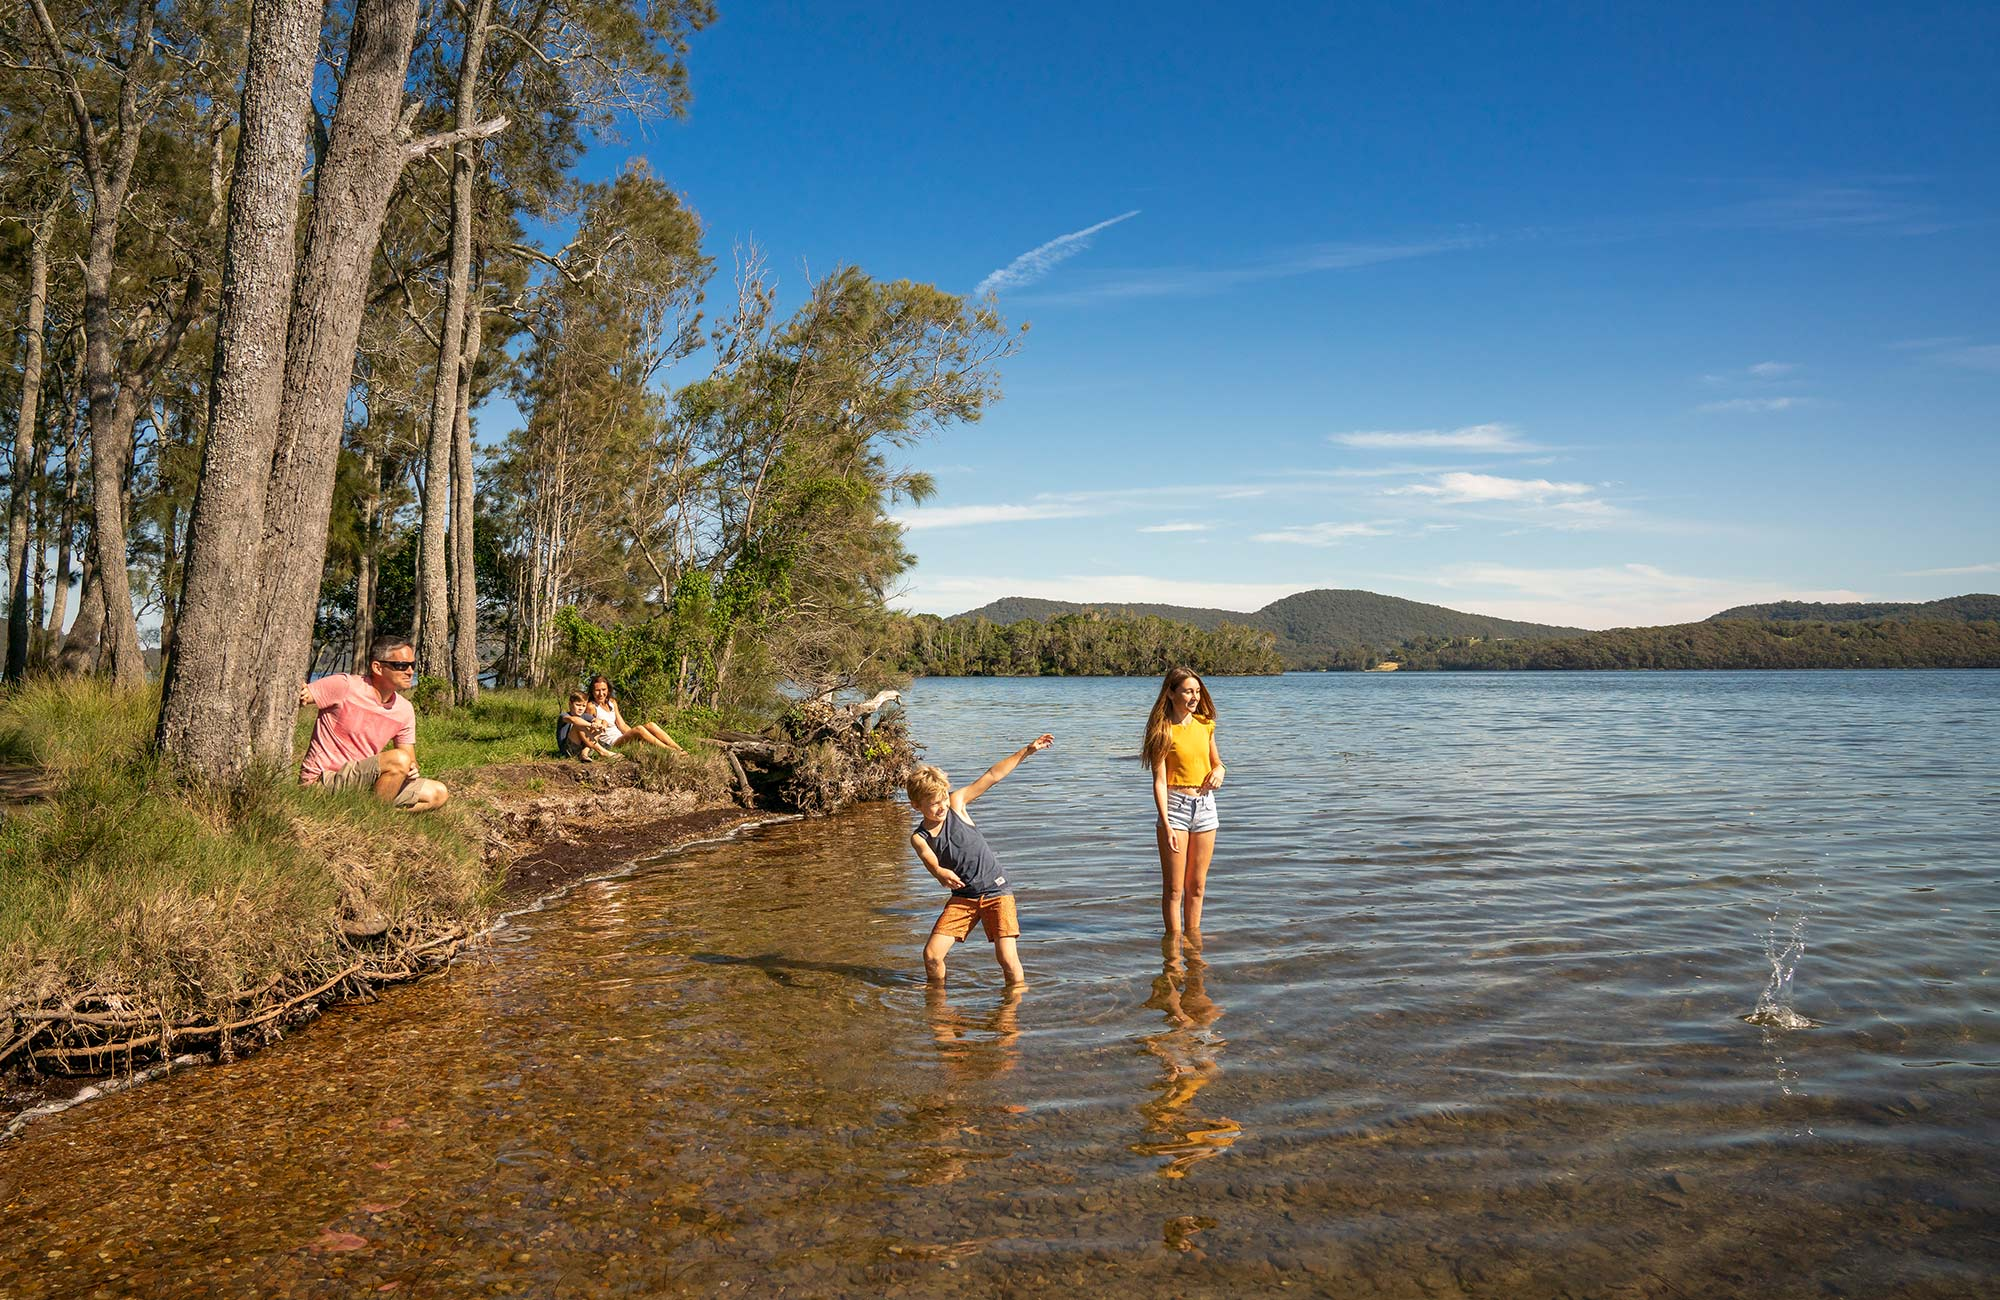 A family on the shores of Wallis Lake in Booti Booti National Park. Photo credit: John Spencer © DPIE